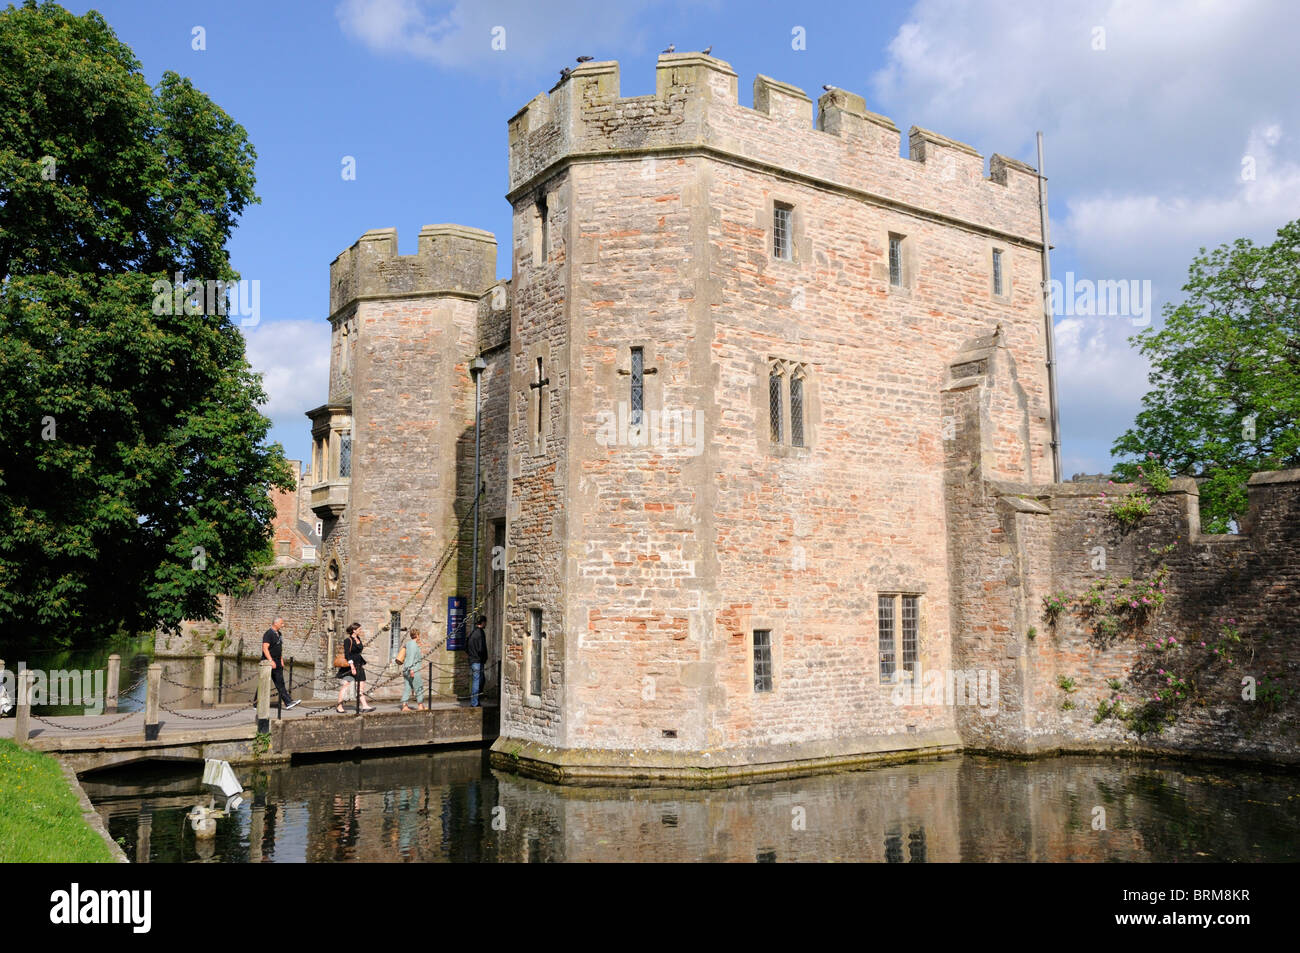 Gateway to the Bishop's Palace, Wells - Stock Image